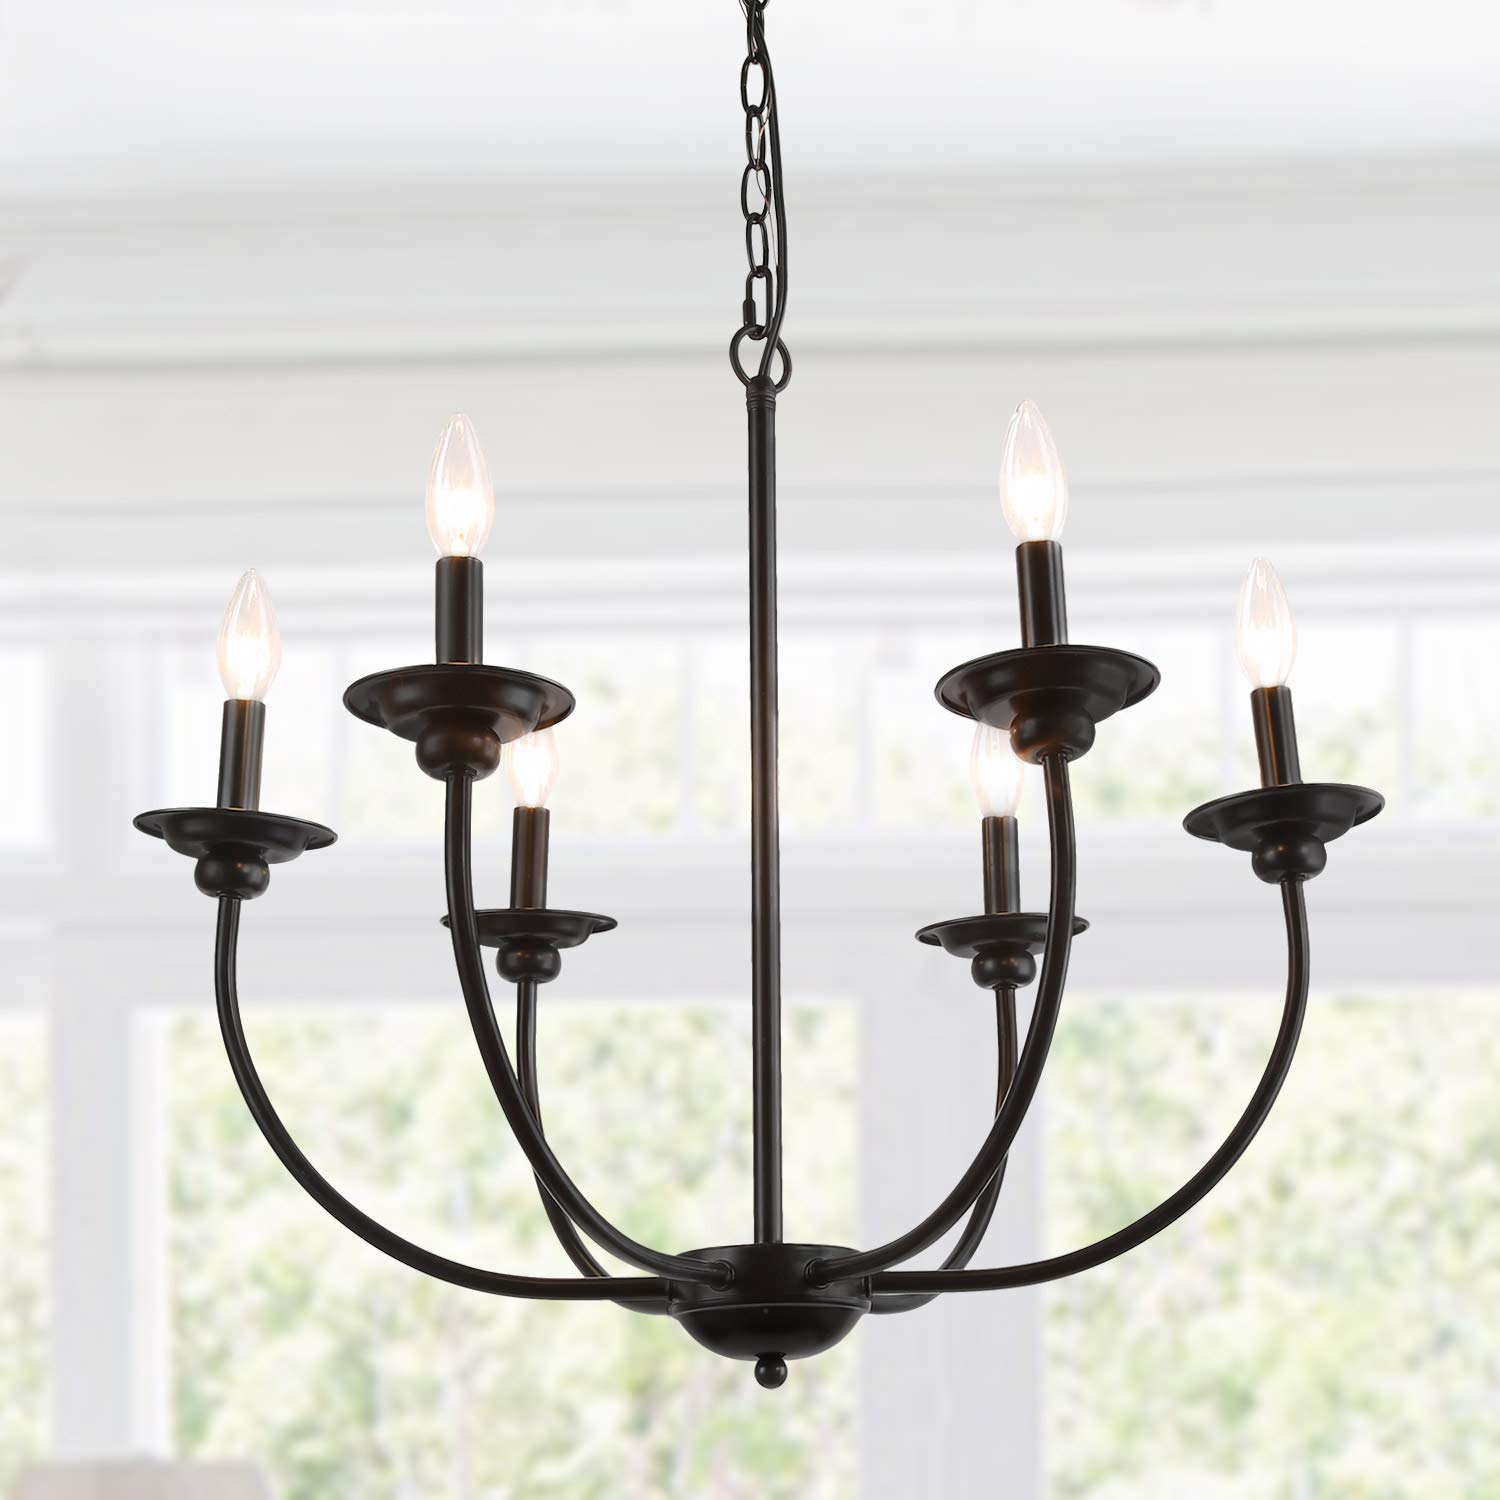 LALUZ 6-Light Transitional Chandeliers Pendant Lights for Dining Room, Oil Black, 26''H x 26''W